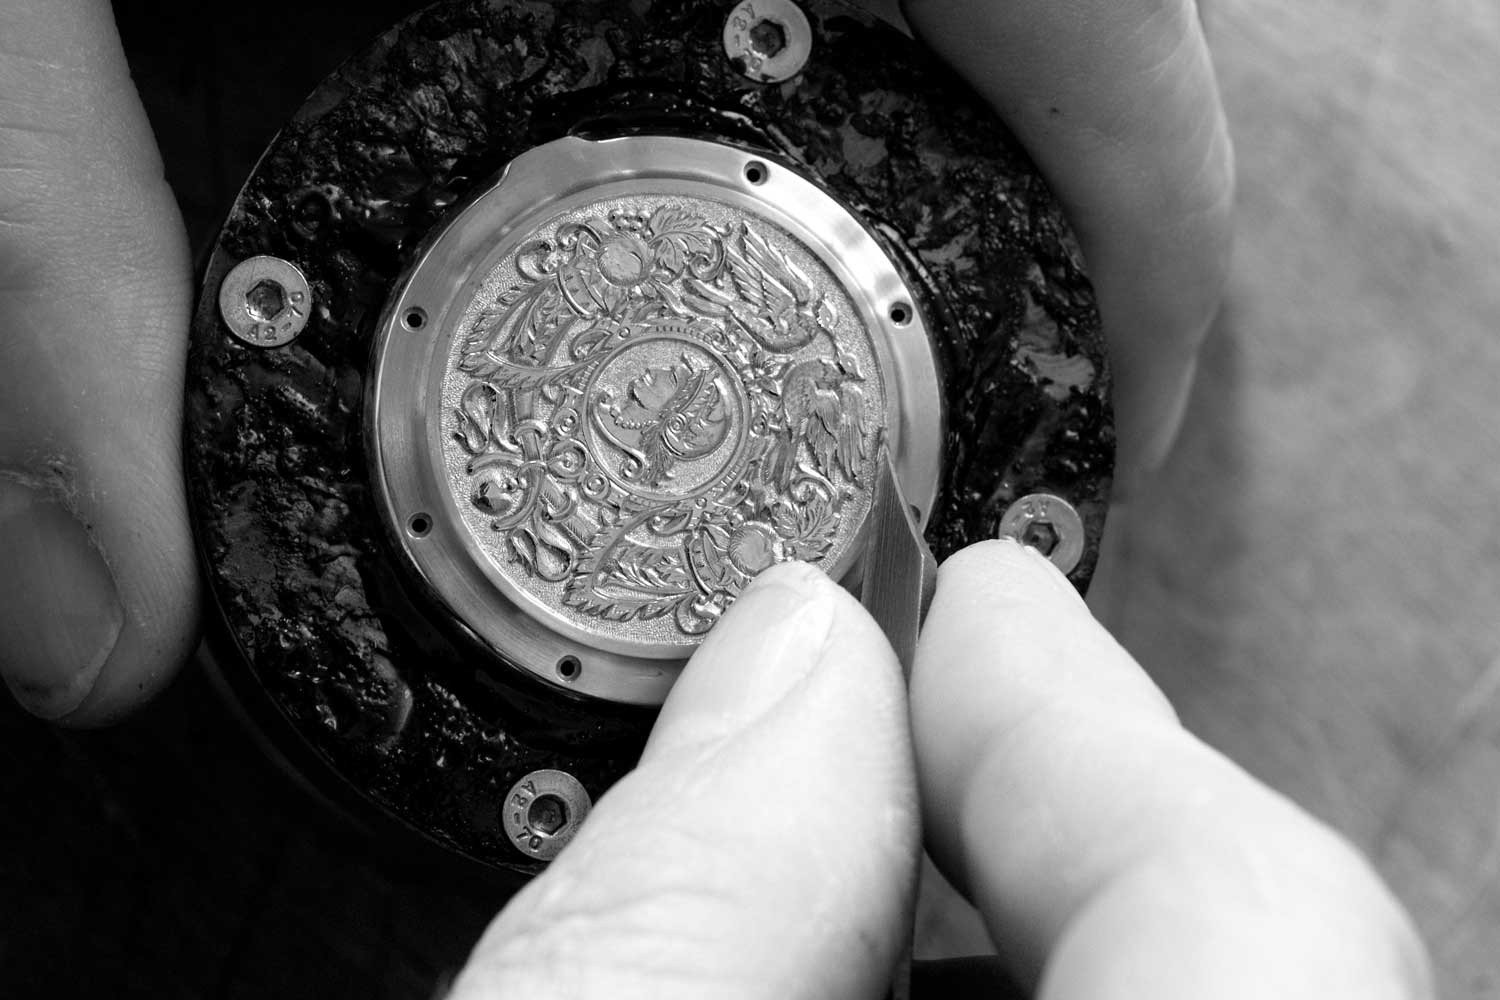 A personalized Lange watch is fitted with a precious metal back that displays an engraved motif